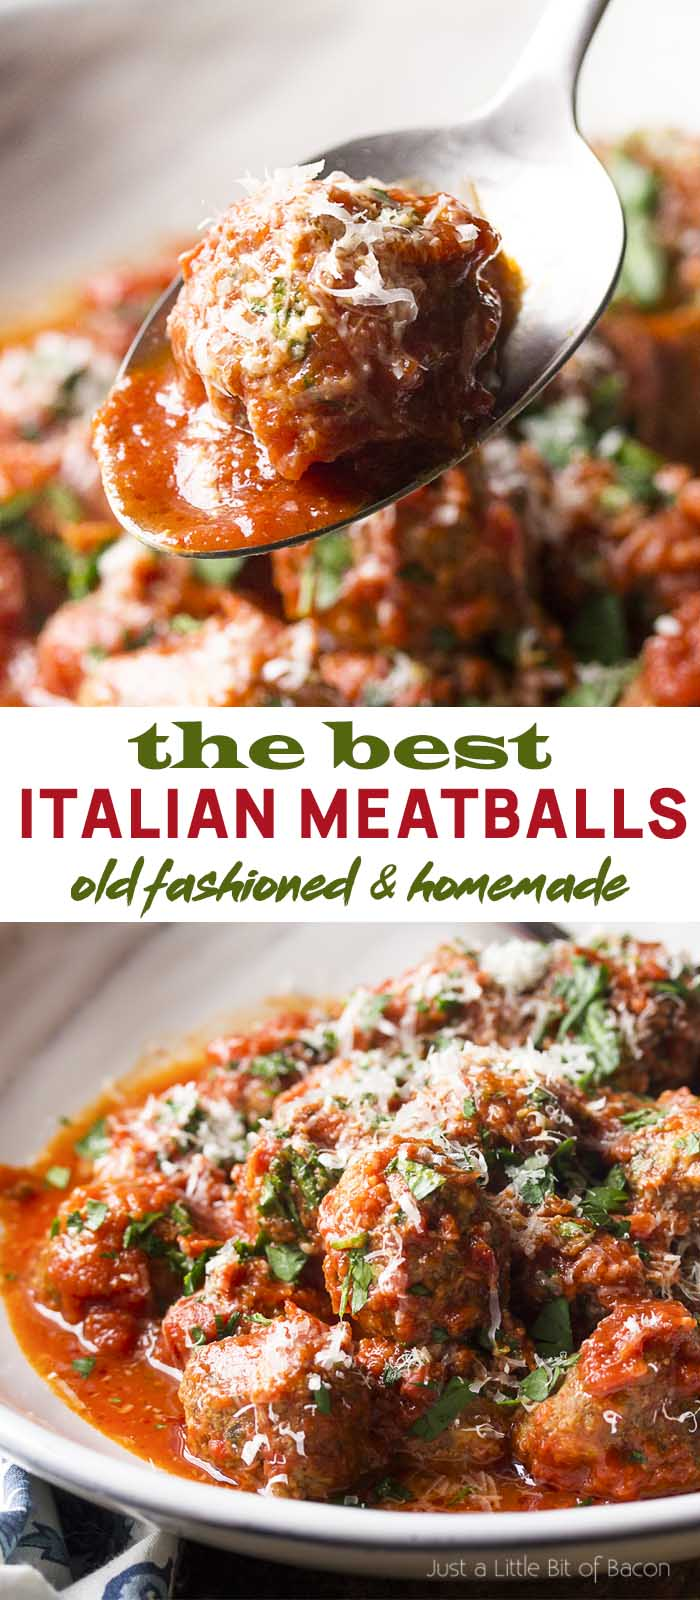 Meatball held on a spoon and in a serving bowl with text overlay - Italian Meatballs.